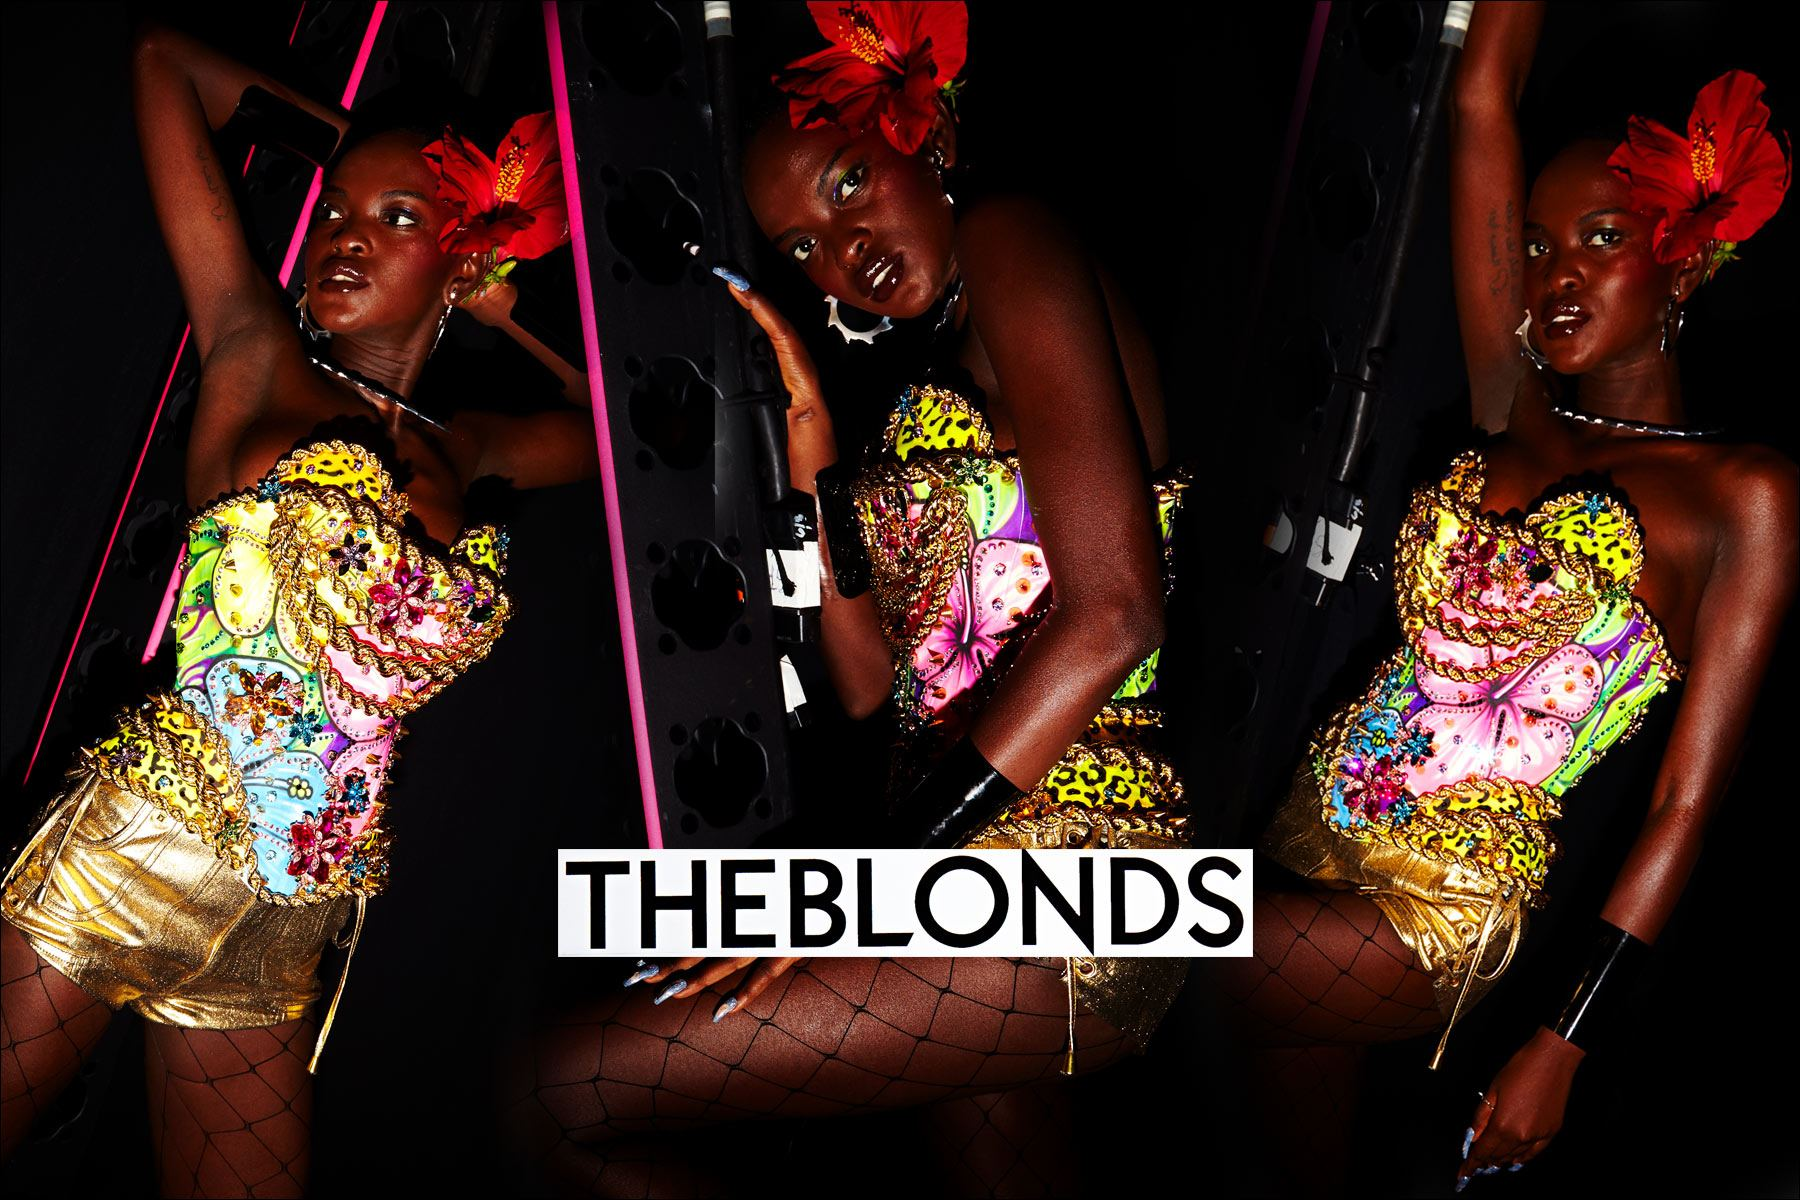 The Blonds. Spring/Summer 2018. Photography by Alexander Thompson. Ponyboy magazine New York.